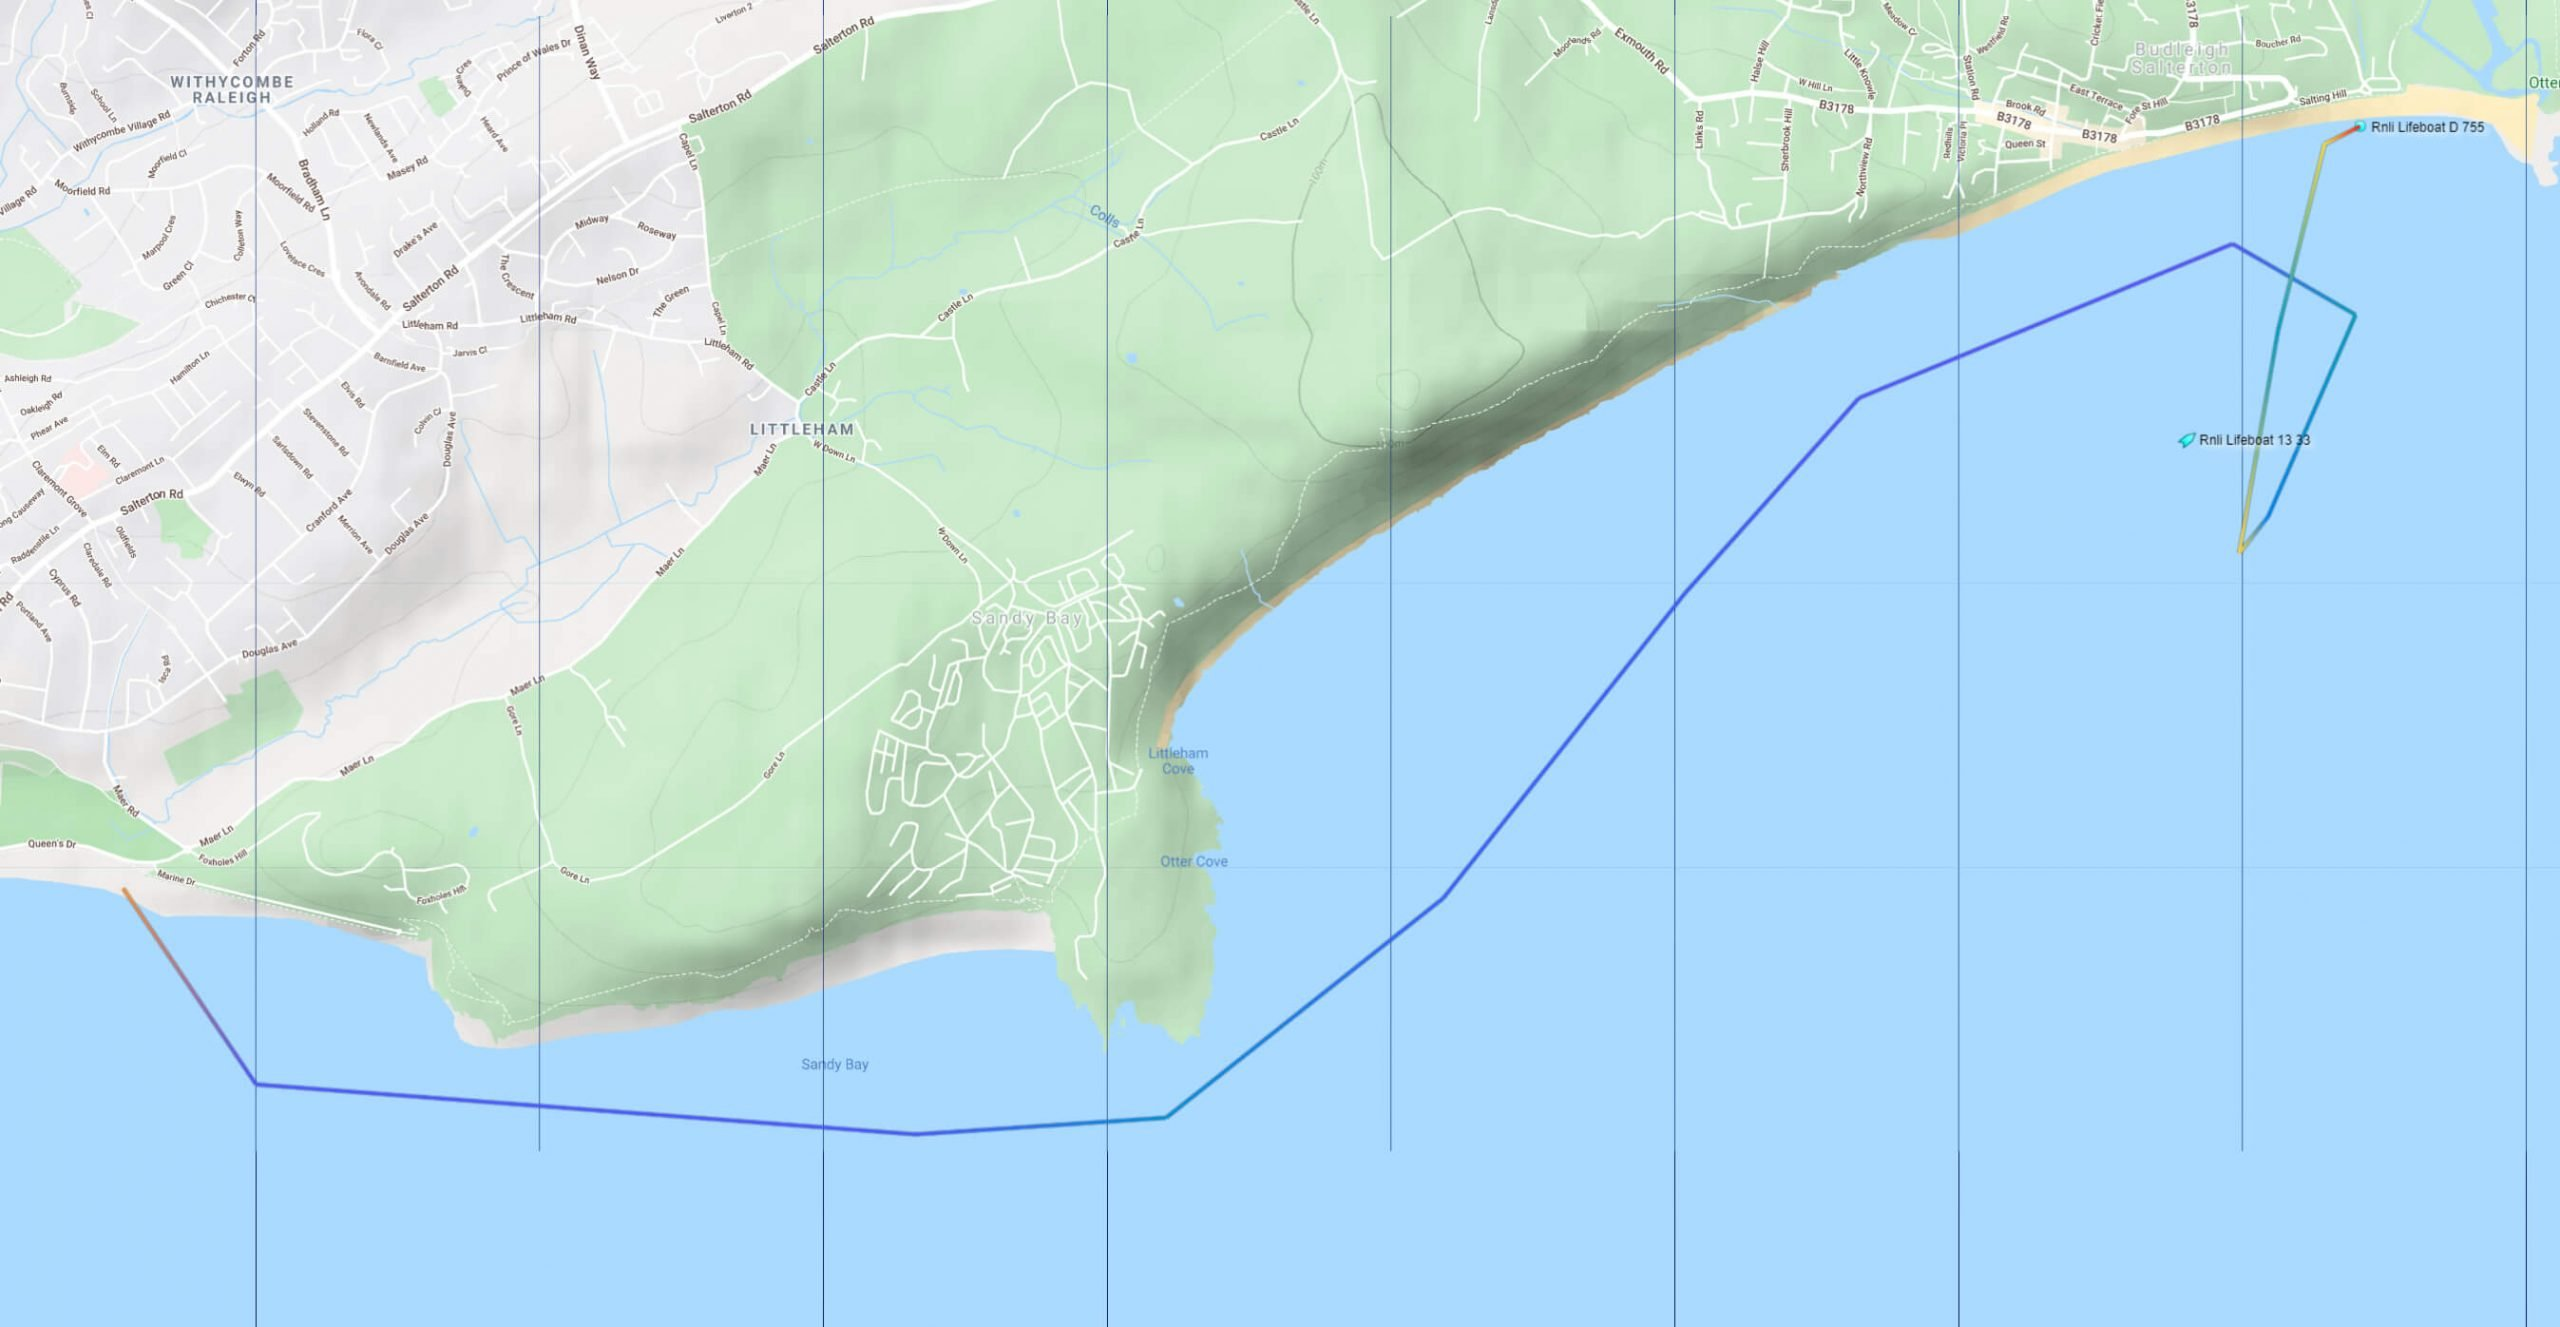 A map of the route taken by Exmouth the inshore lifeboats. Image: Marine Traffic